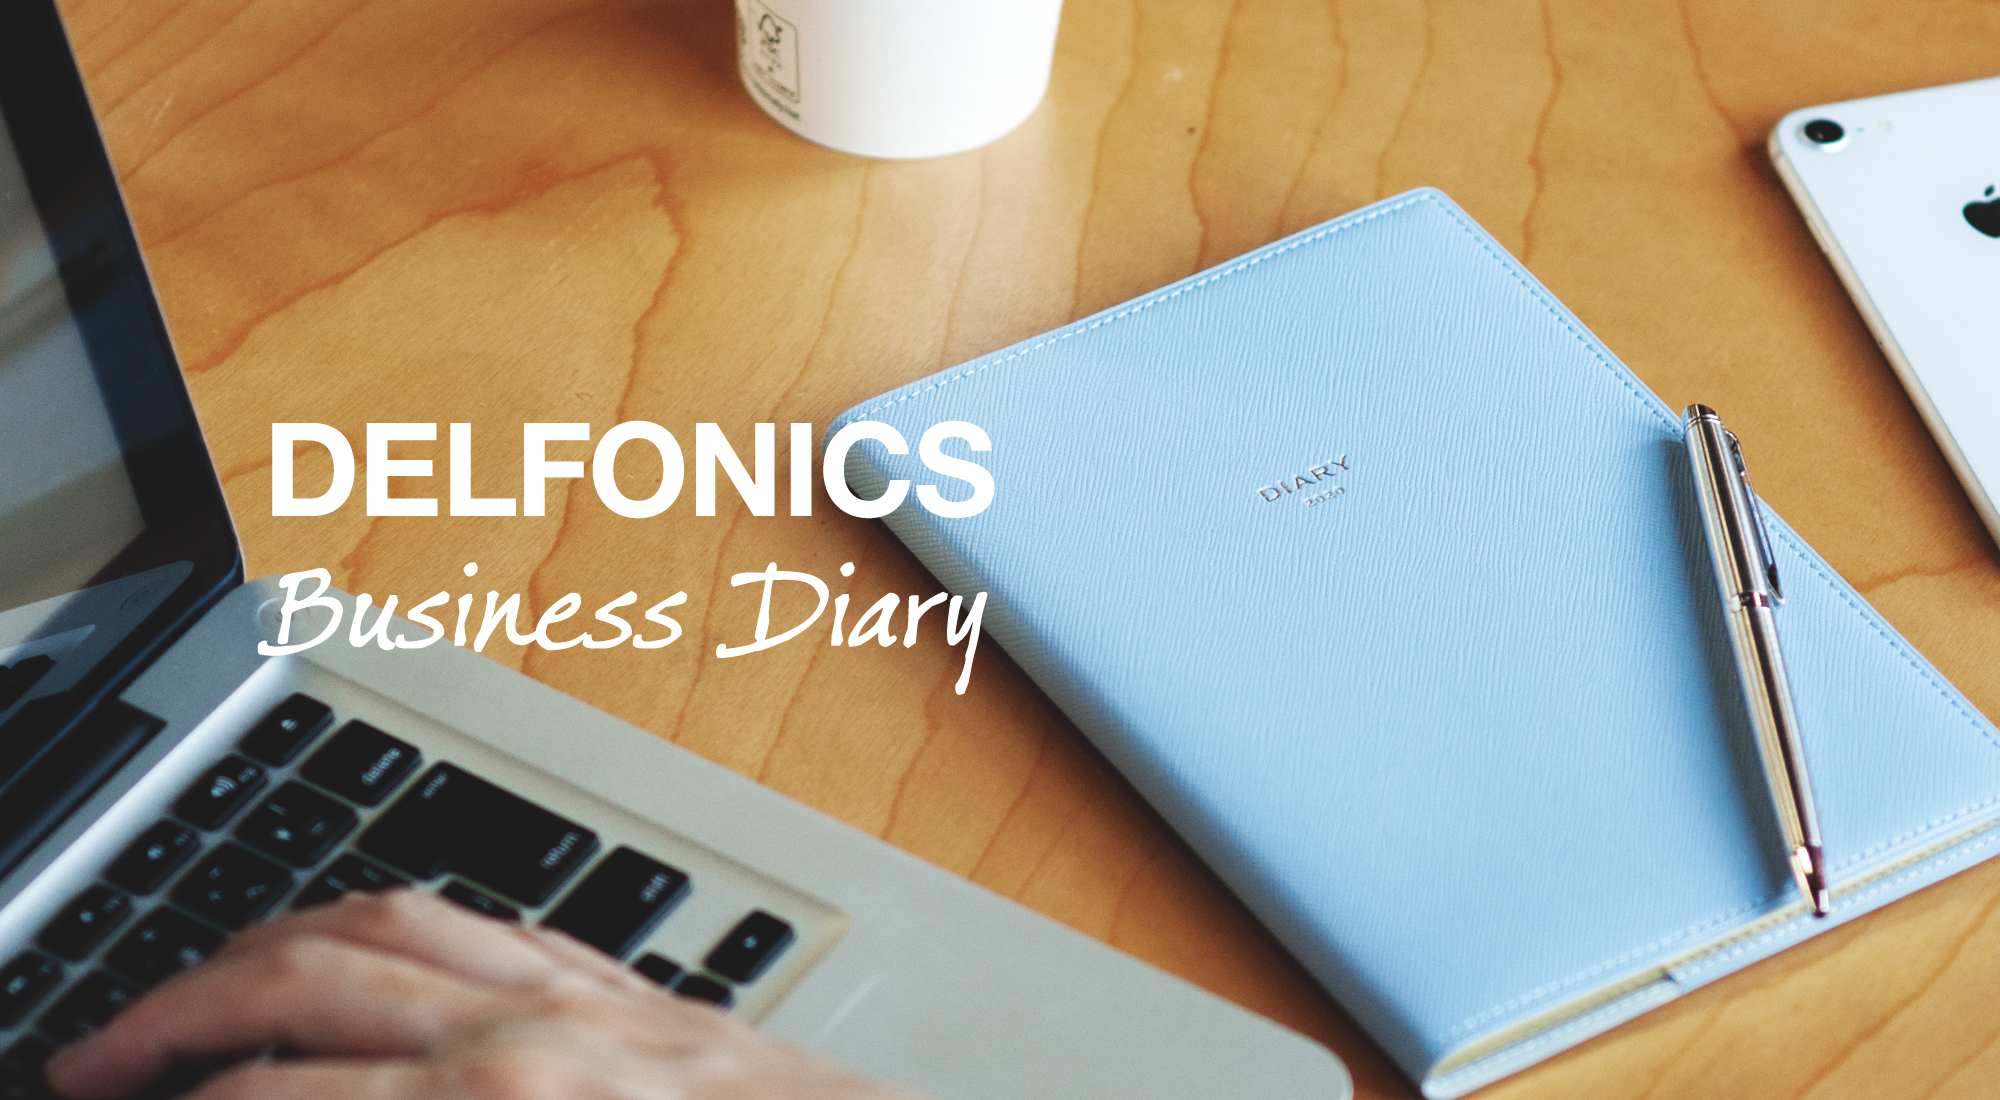 DELFONICS BUSINESS DIARY